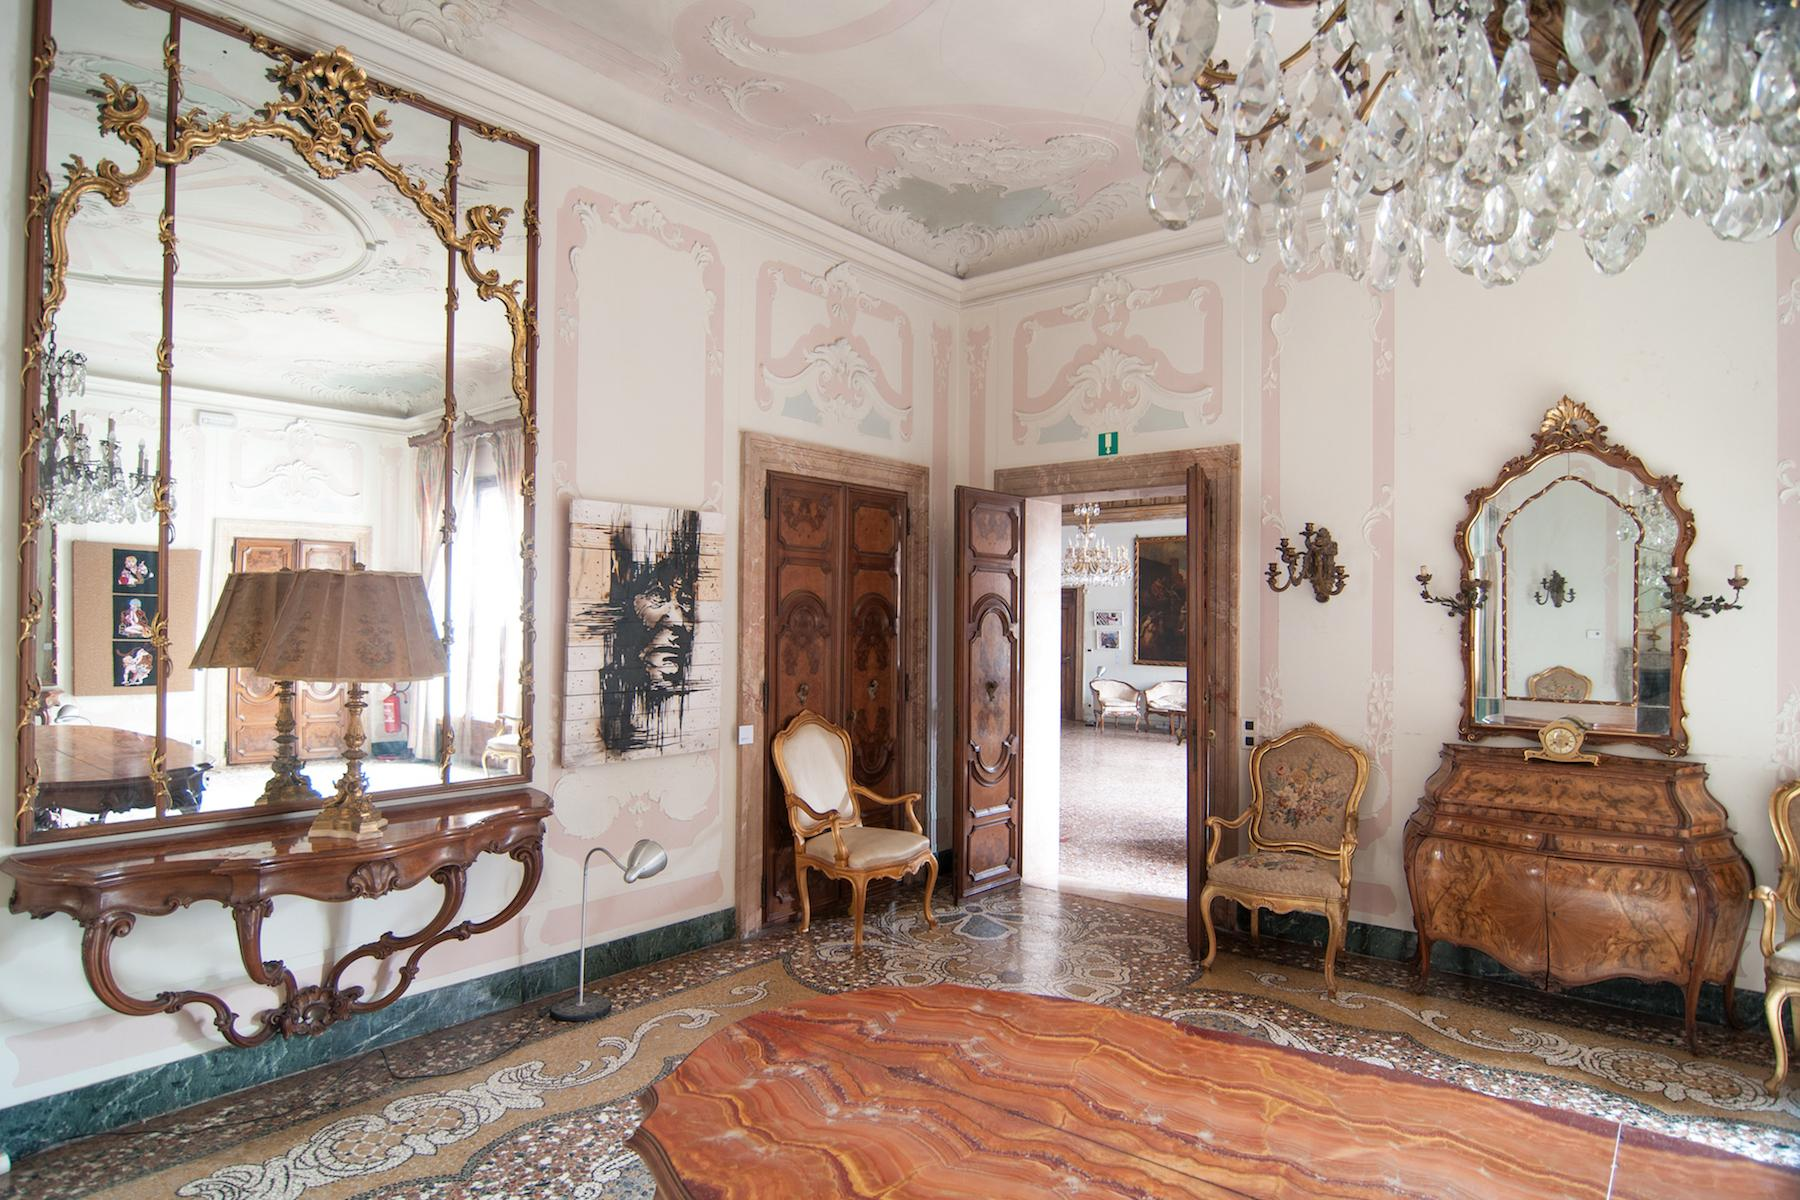 16th Century Palazzetto with permissions for a 23 bedroom hotel - 4